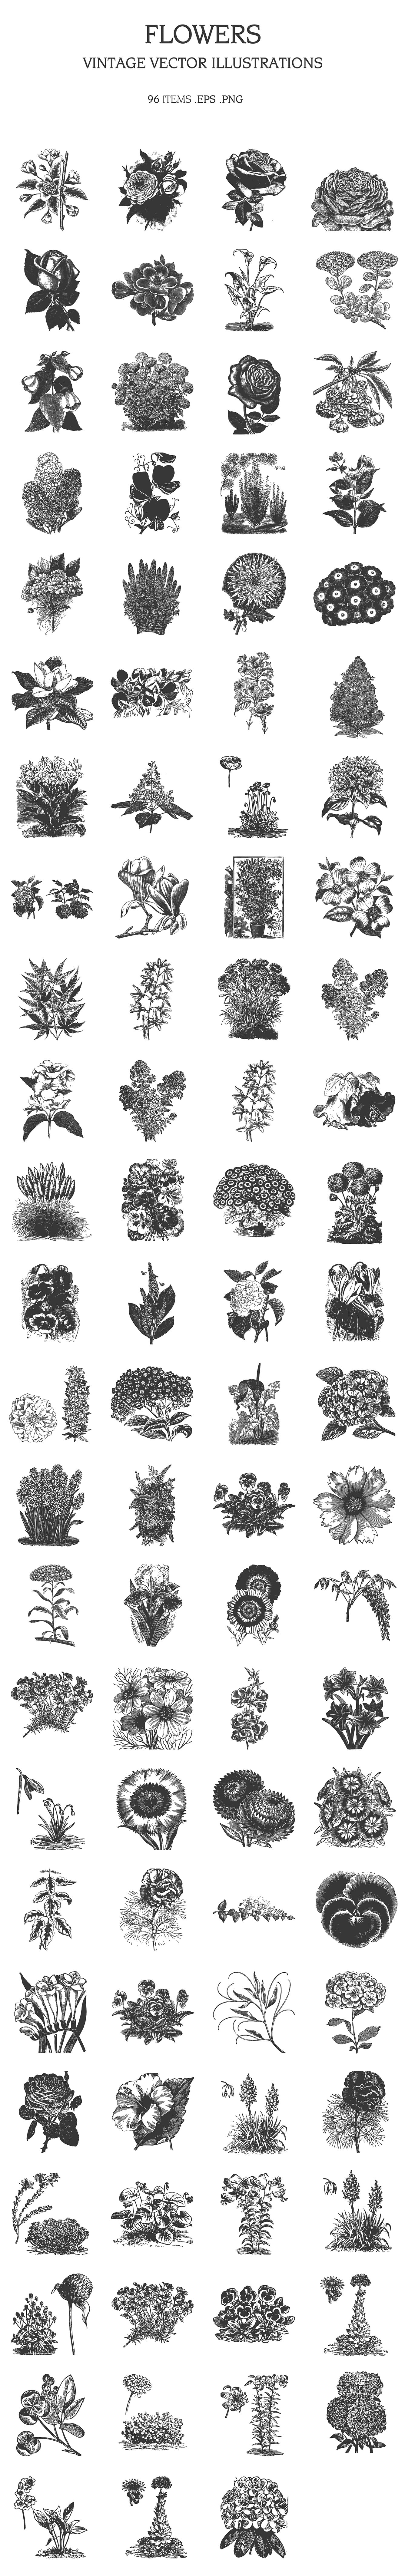 Large collection of flowers in vintage style.